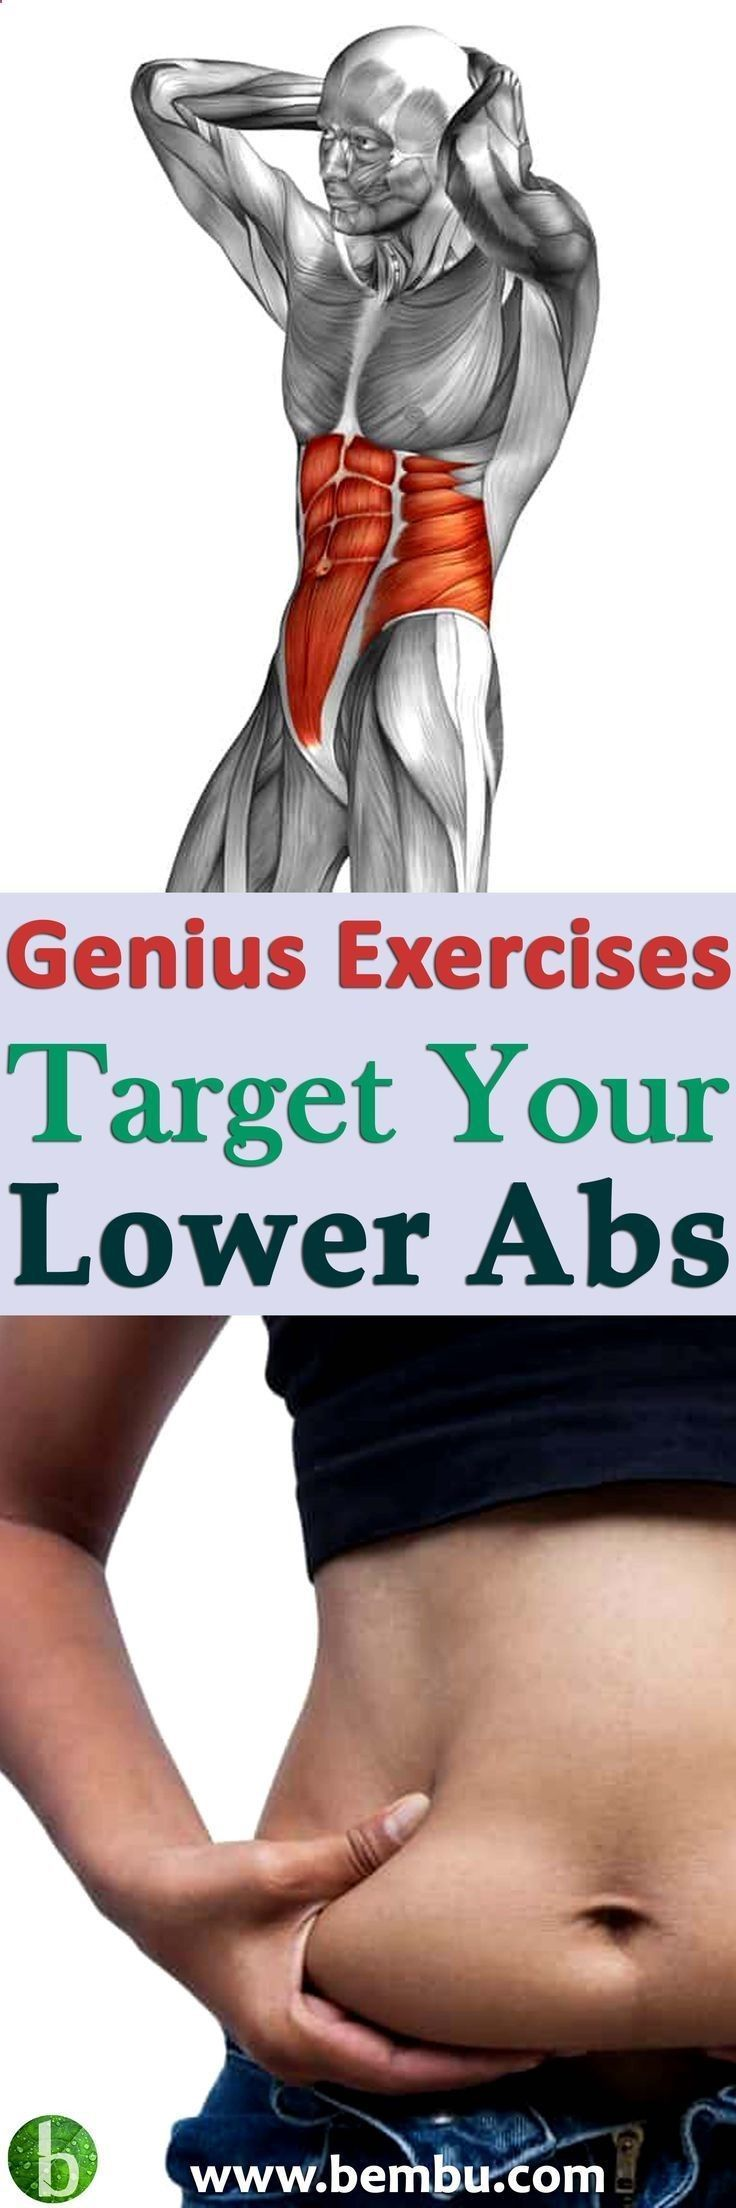 pics The Best Workouts to Target Specific Problem Areas